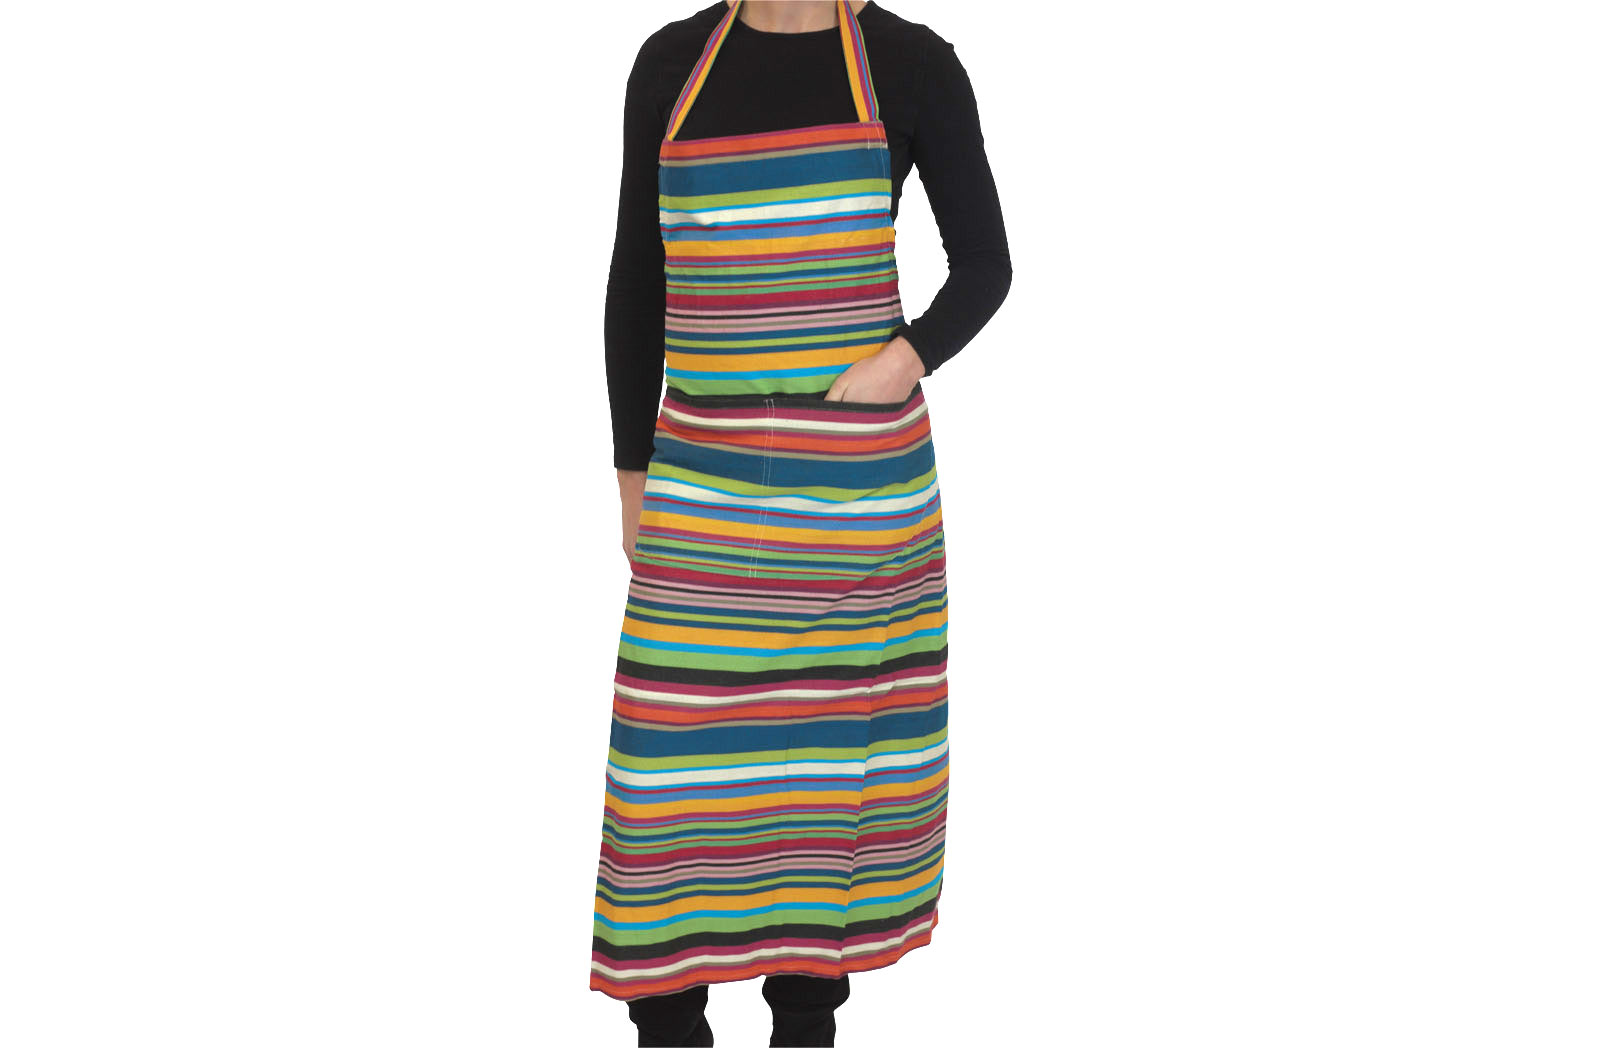 Striped Aprons - Navy, Green, Yellow, Red, White, Black and Pink Stripes